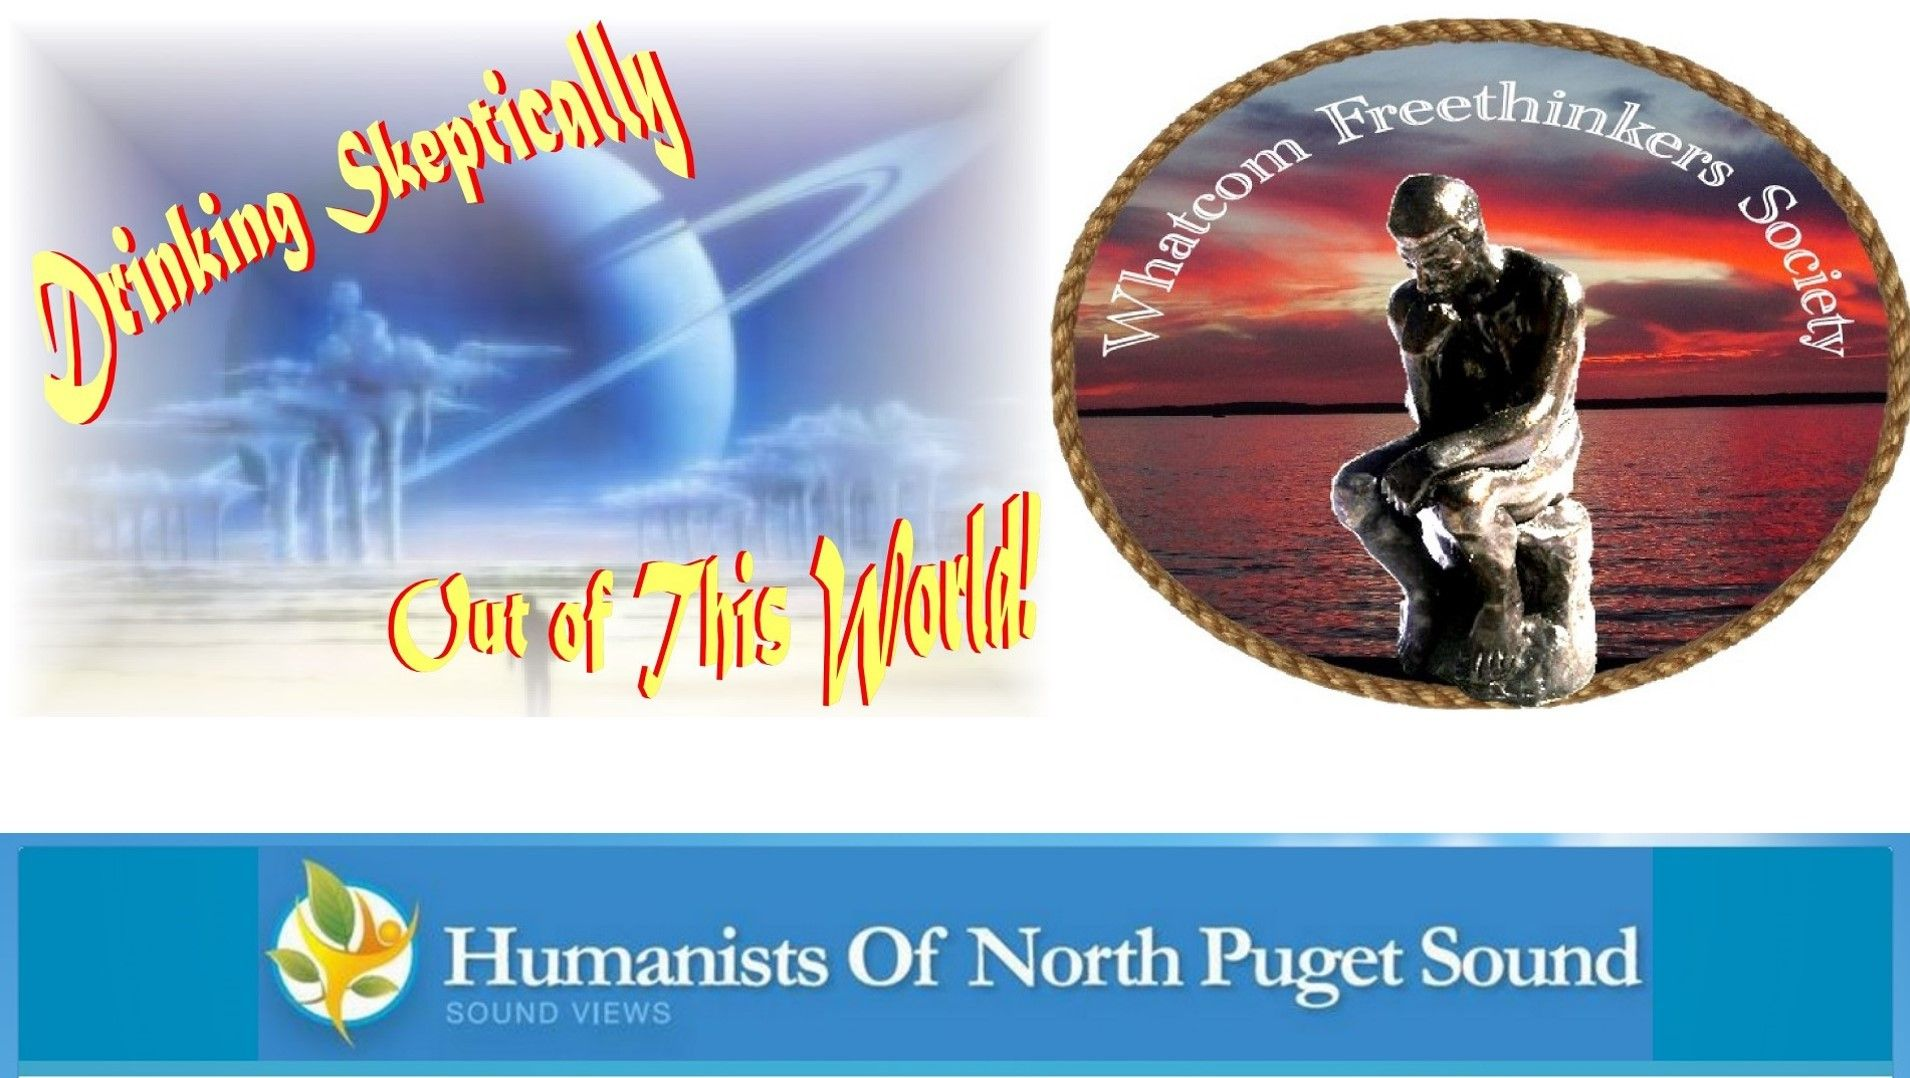 Humanists of North Puget Sound